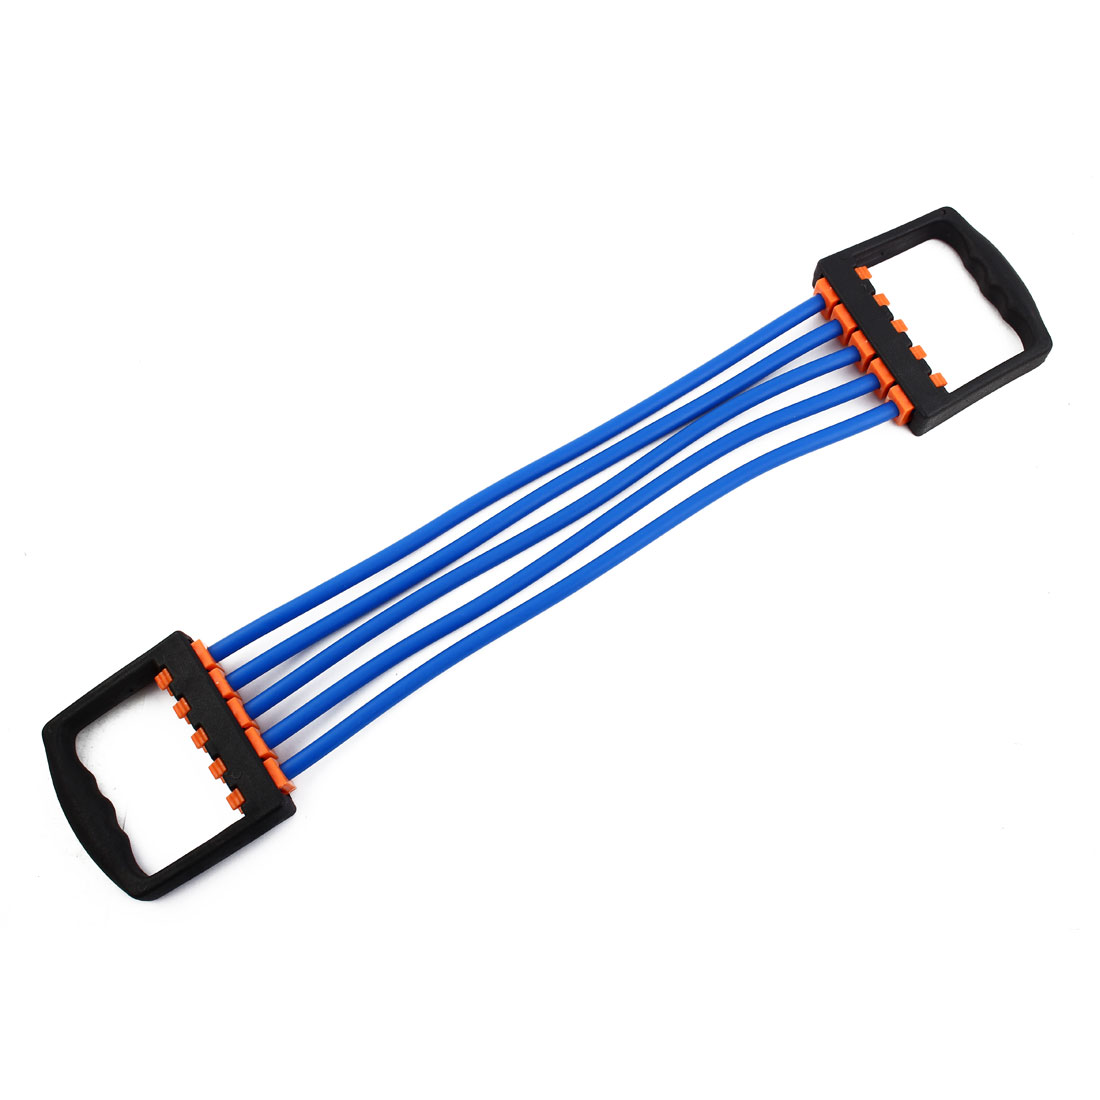 Sports Rubber Stretchy Powerlifting 5 Resistance Tube Strength Training Rope Workout Hose Blue